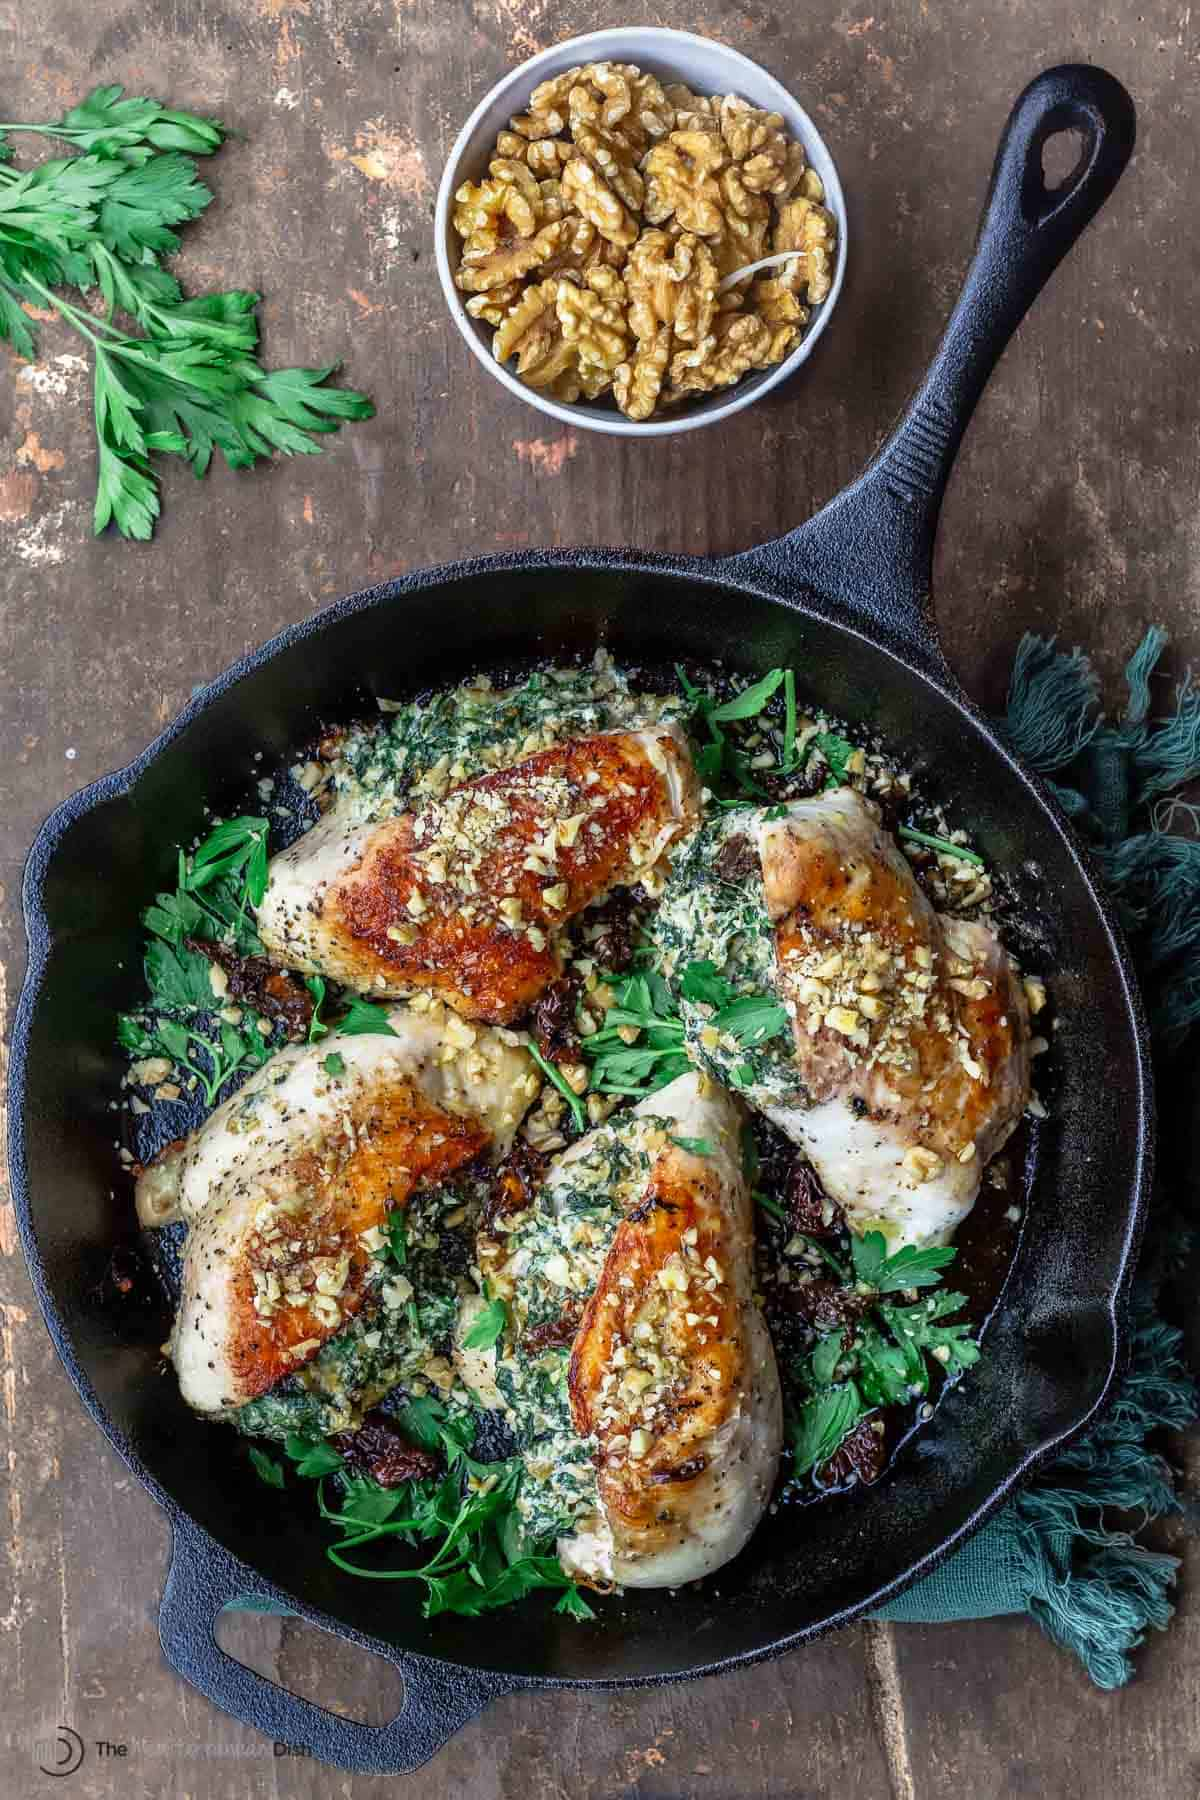 stuffed chicken breasts with a side of walnuts